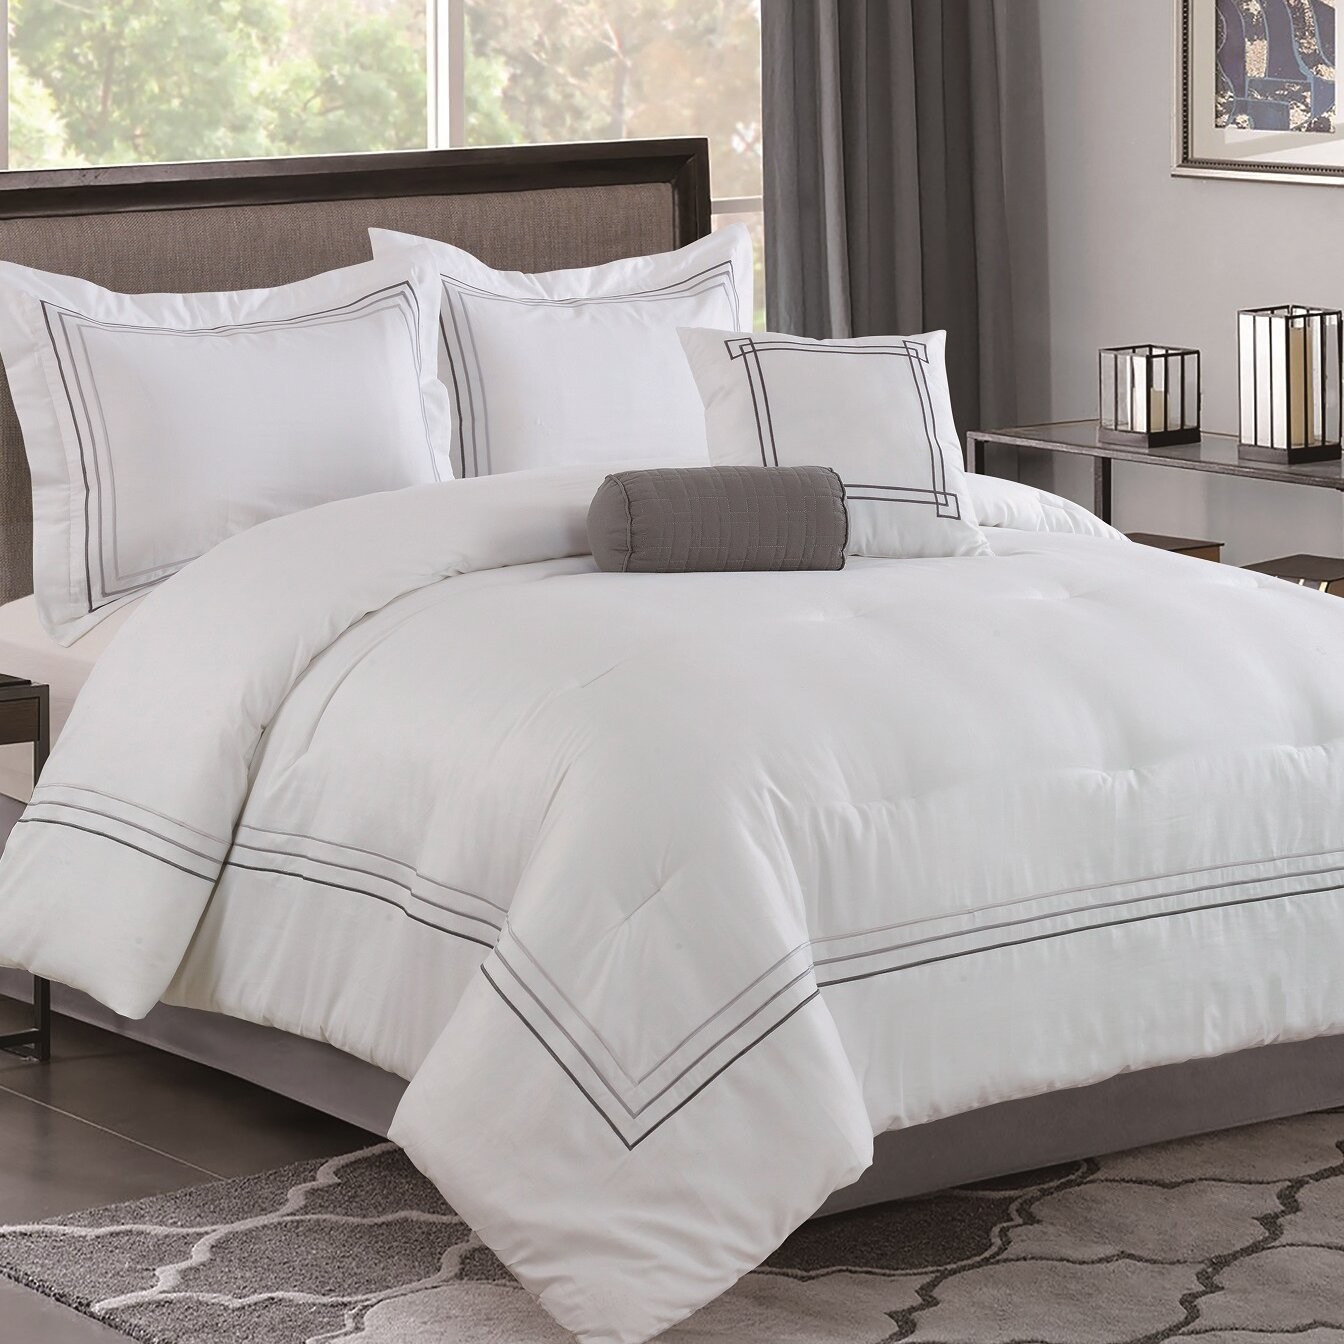 Bellagio At Home Comforter Set Reviews Wayfair